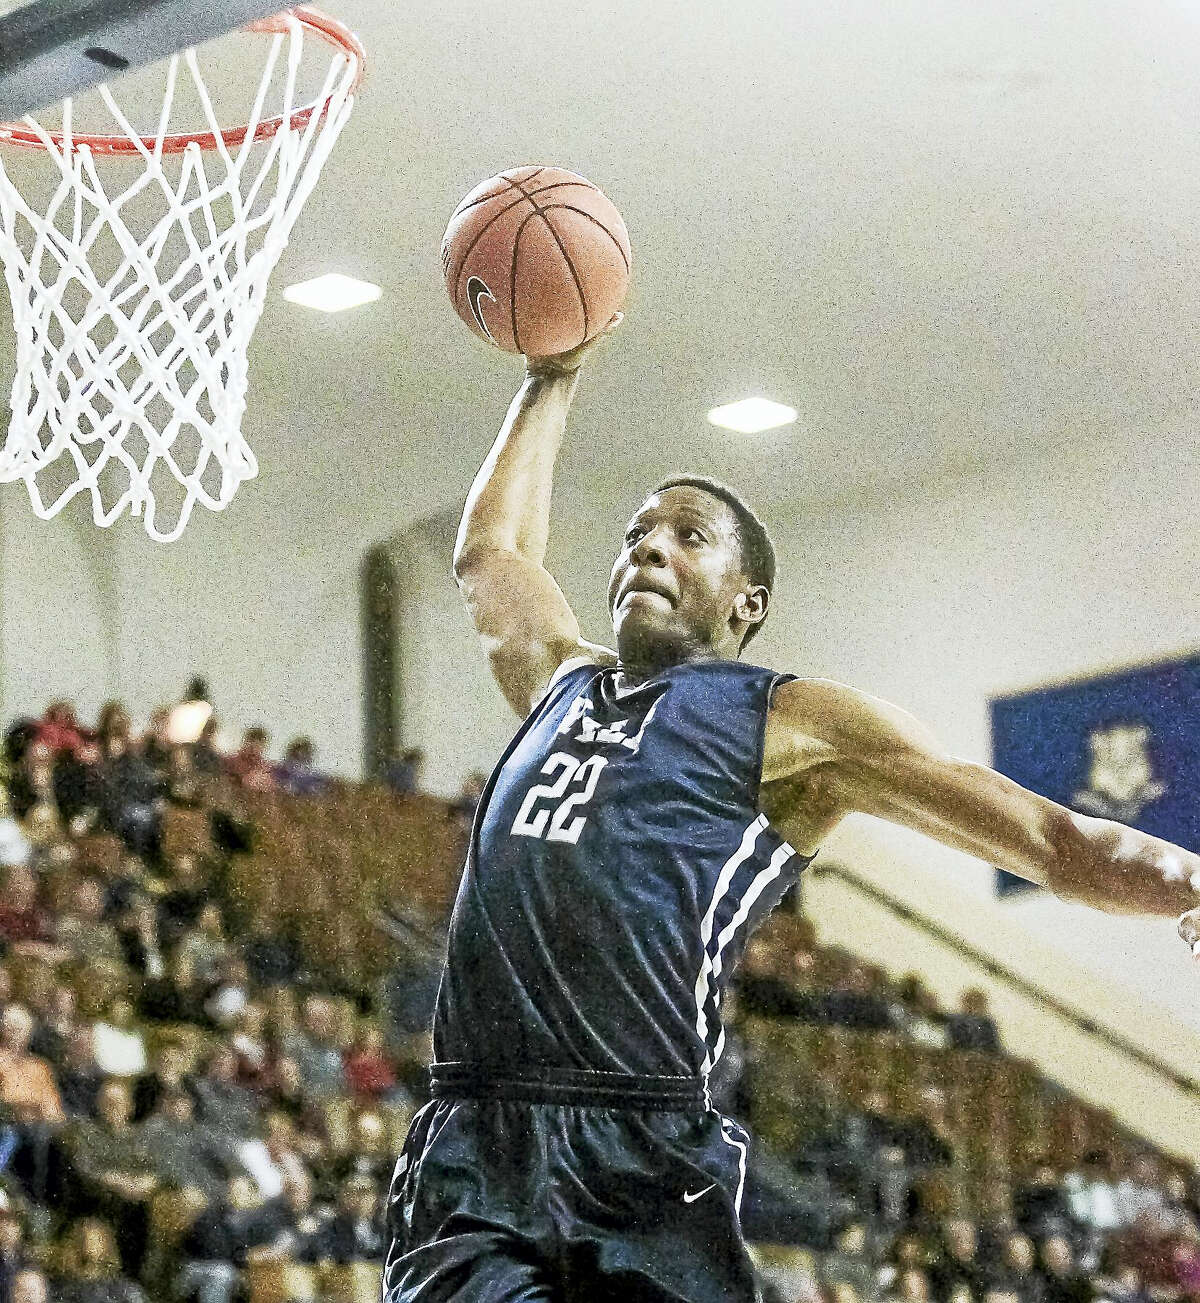 Yale's Justin Sears is seen here during a game against Princeton earlier this season.